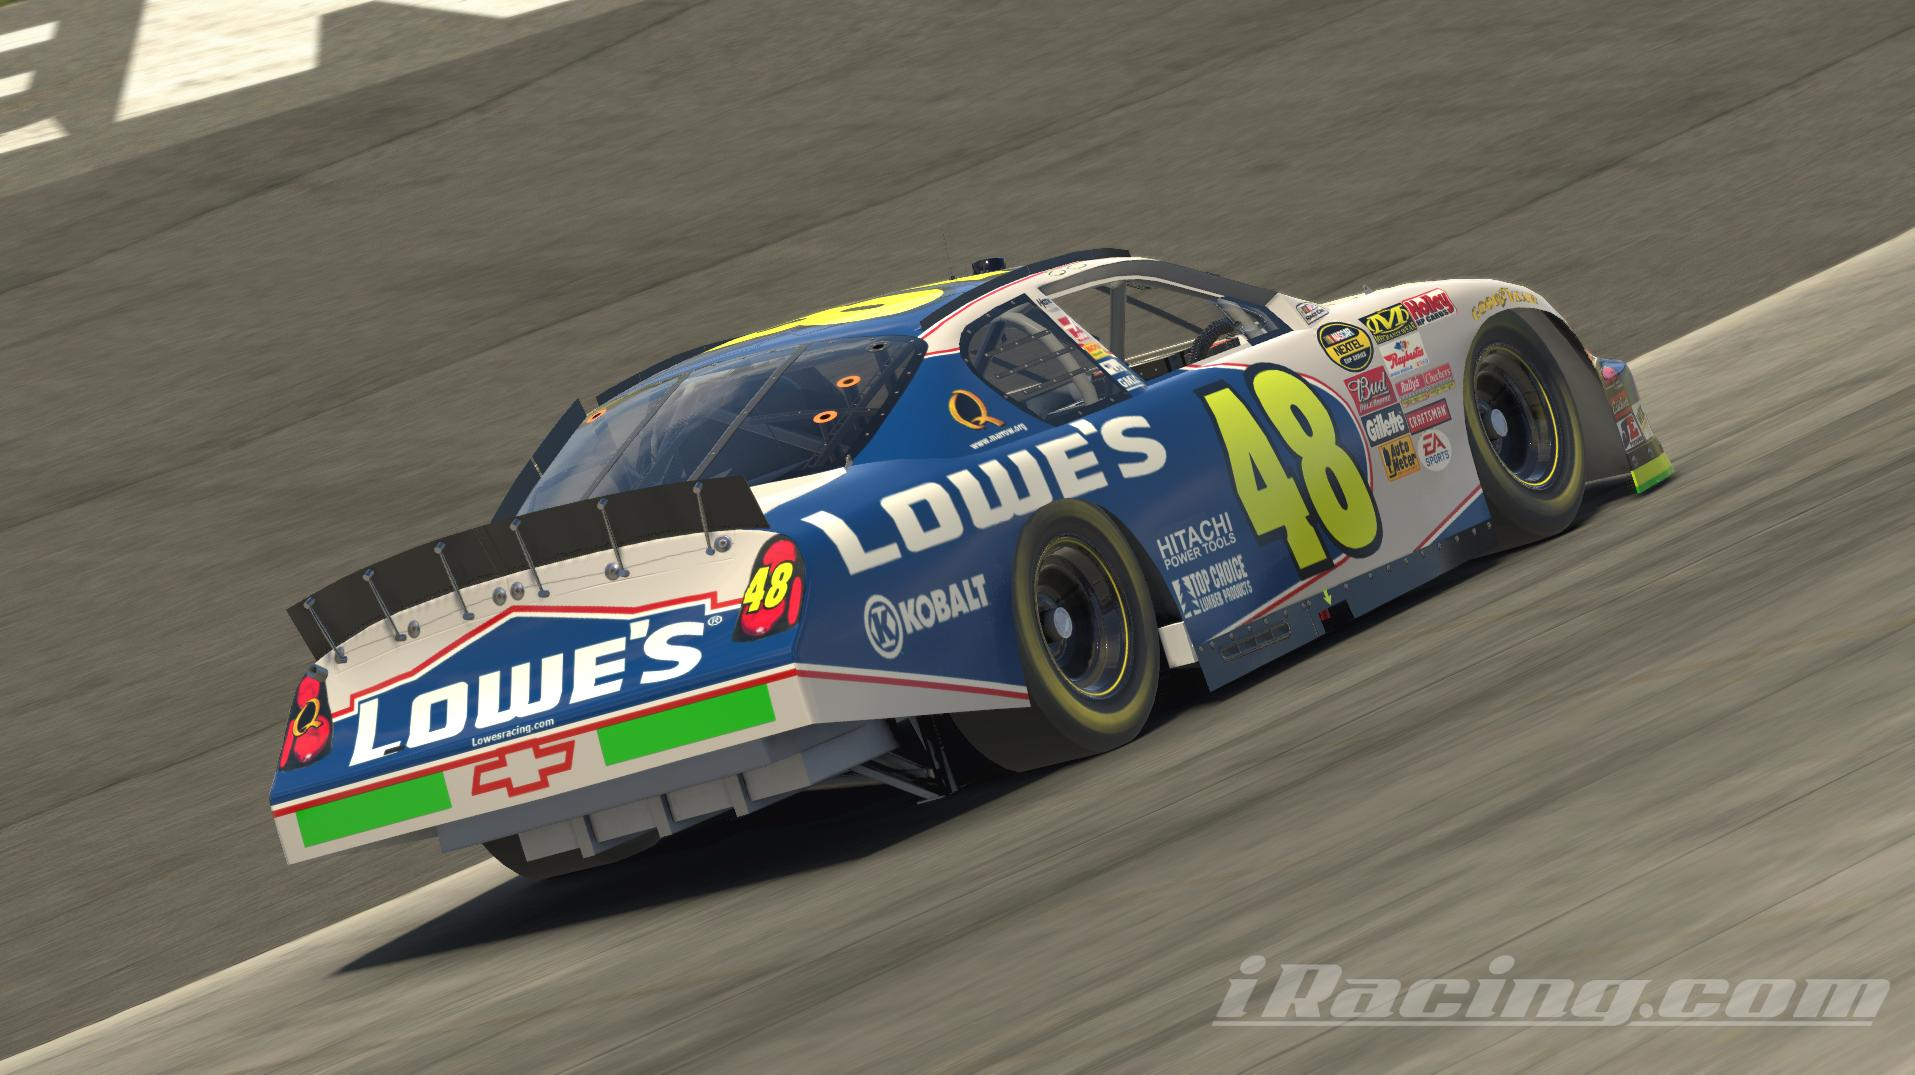 Preview of Jimmie Johnson 2005 Lowes Monte Carlo by Chandler Krizek